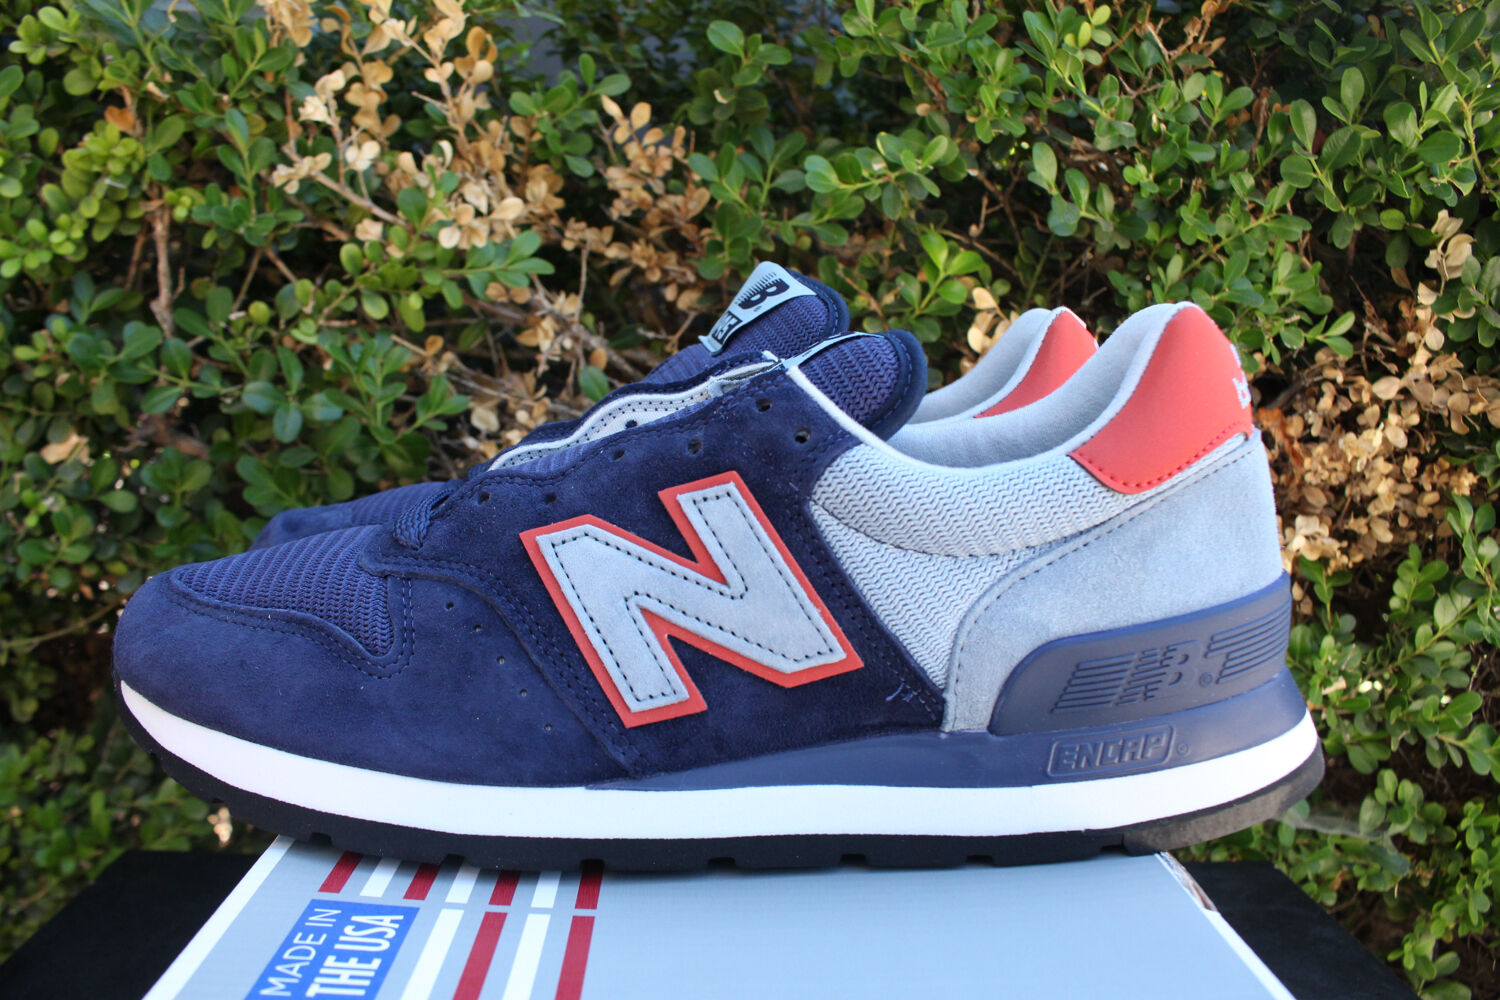 NEW BALANCE 995 MADE IN USA SZ 8 PIG SUEDE NAVY CYCLONE BLUE M995CJA